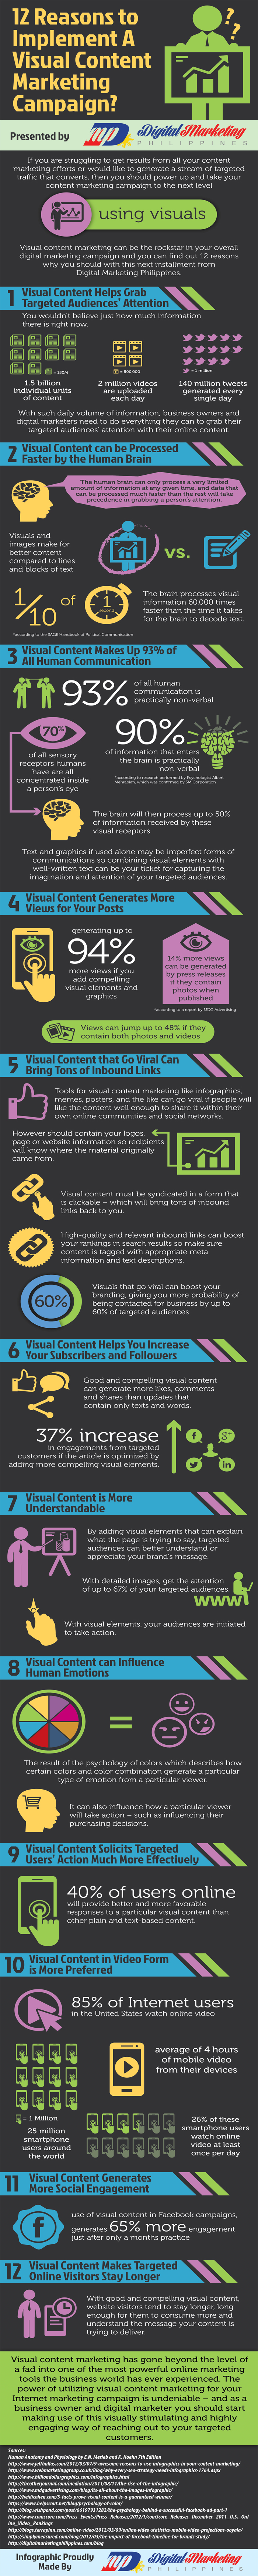 12 Reasons to Implement A Visual Content Marketing Campaign (Infographic) - An Infographic from Digital Marketing Philippines